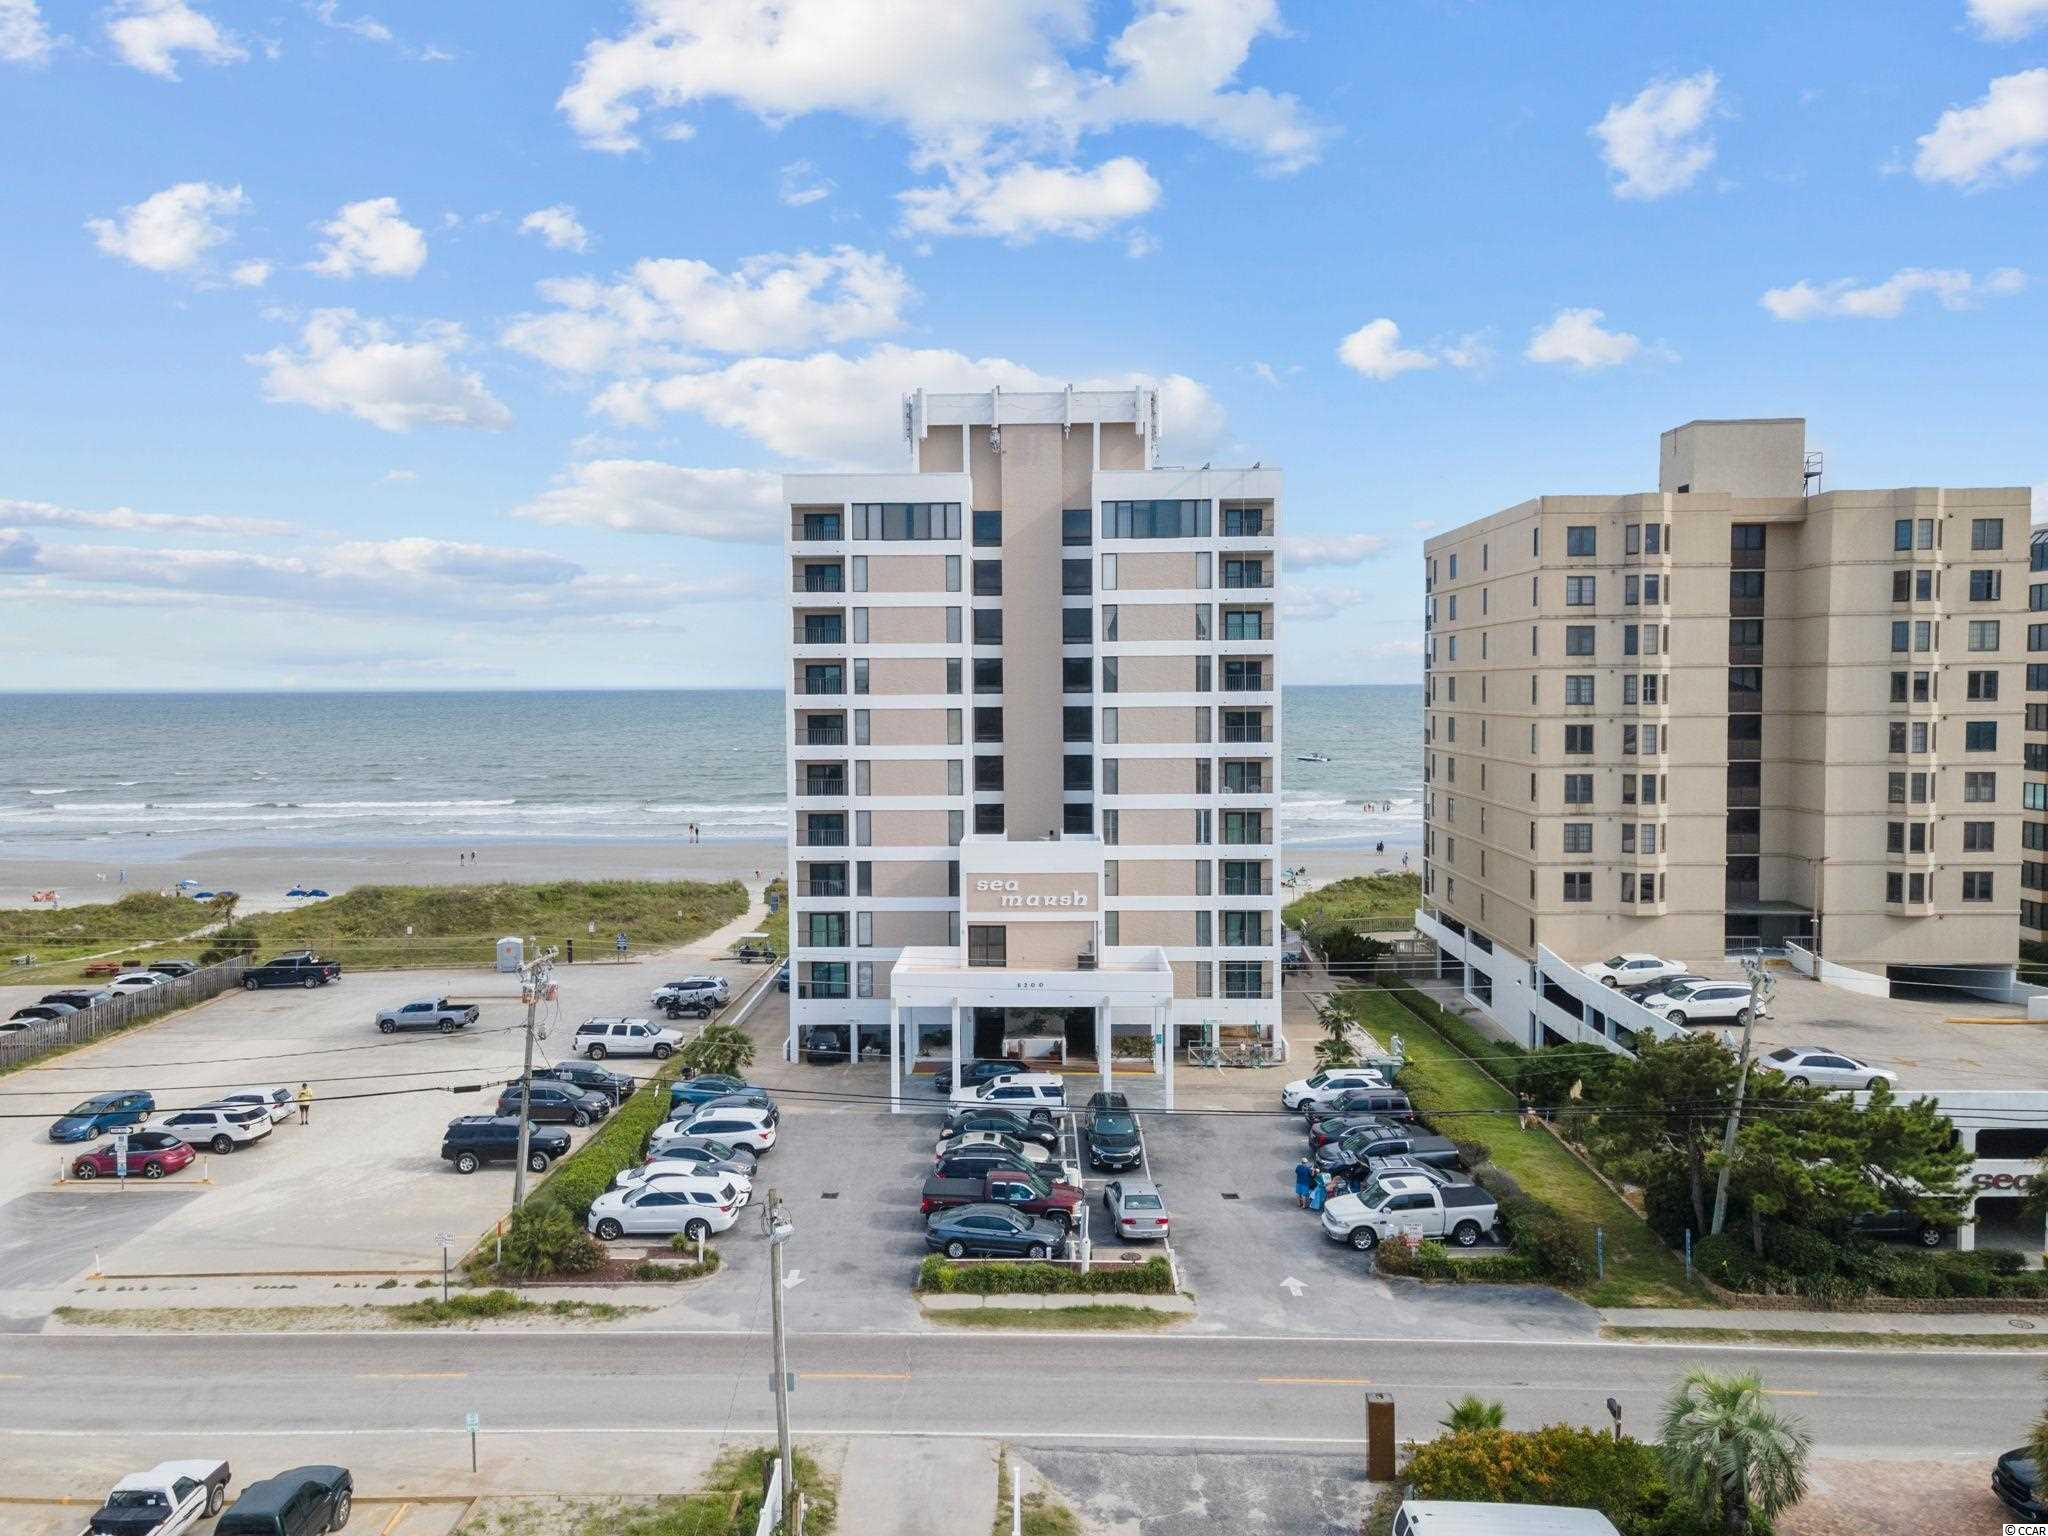 Here is your chance to own a little slice of Heaven at the beach. This top floor penthouse unit, located in Sea Marsh 1 has breathtaking views. This 3 bed 3 Bath unit has it all, new LPV flooring throughout, new paint, appliances, and more! Sea Marsh 1 offers an oceanfront pool and ample parking. You can easily access the Cherry Grove Channel from the boat ramp in the second parking lot across the street. Enjoy a short walk to the Cherry Grove point and the Heritage Shores Nature Preserve. Now is your opportunity, don't miss it. Schedule your showing today!